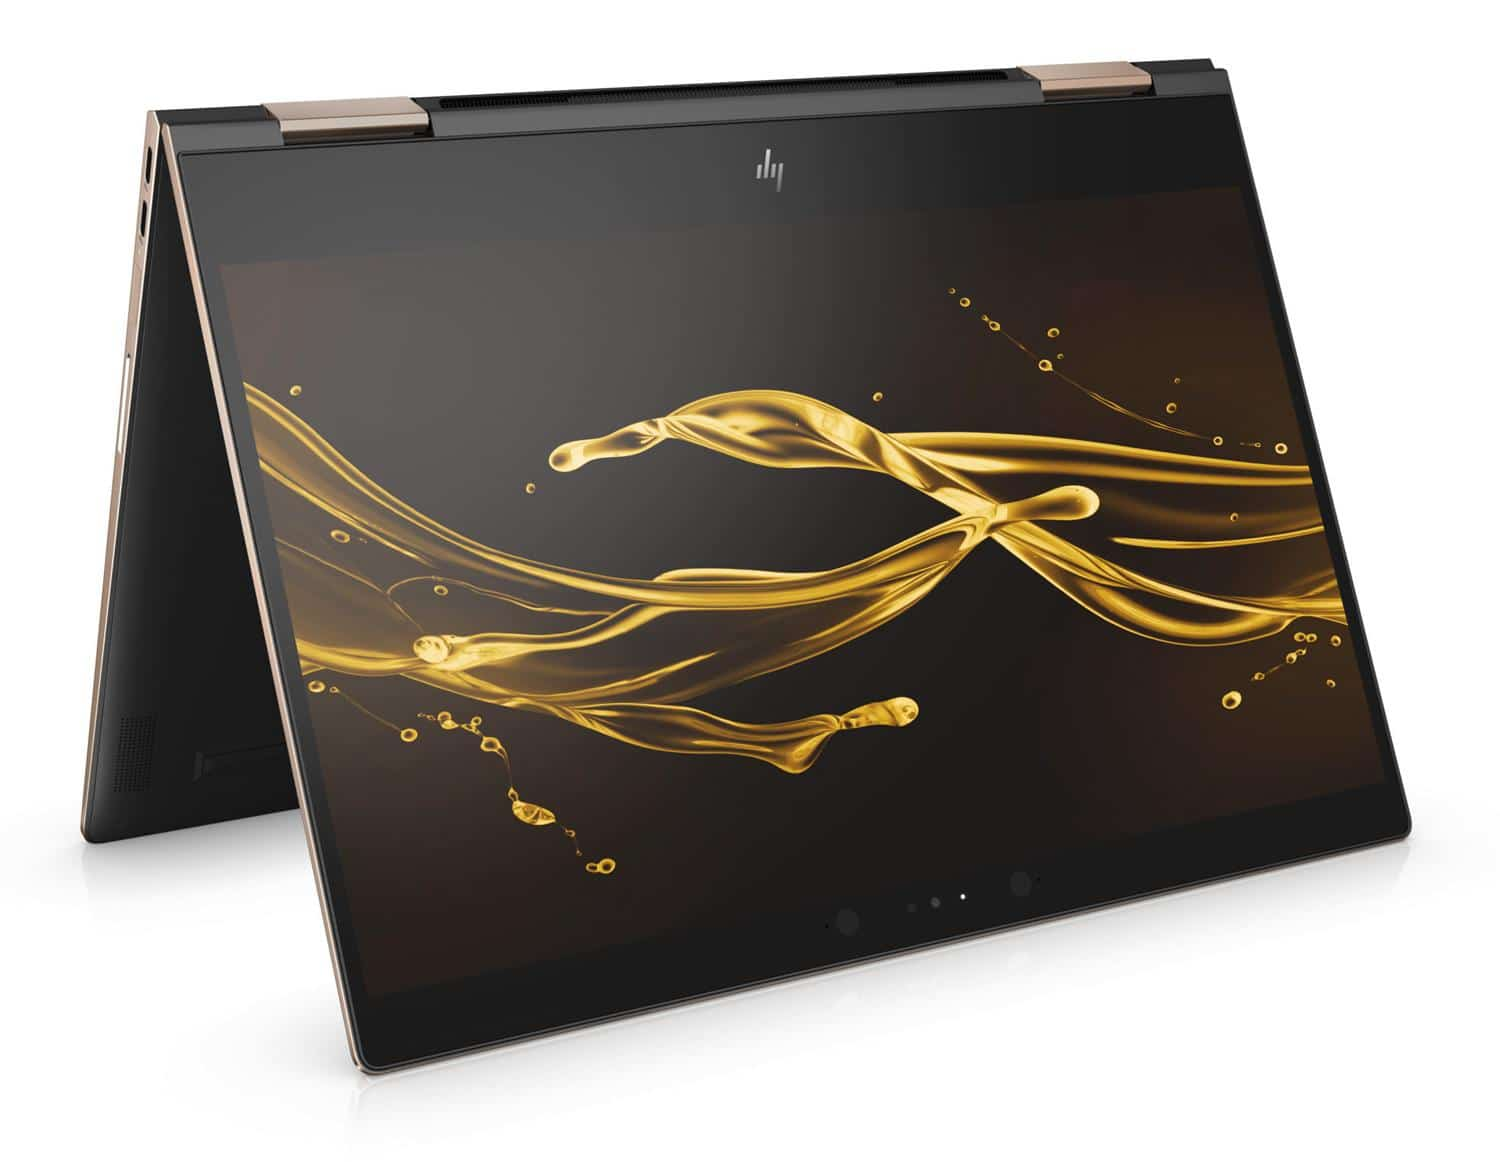 HP Spectre x360 13-ae020nf, 13 pouces Tablette i7 Refresh IPS 16 Go à 1530€